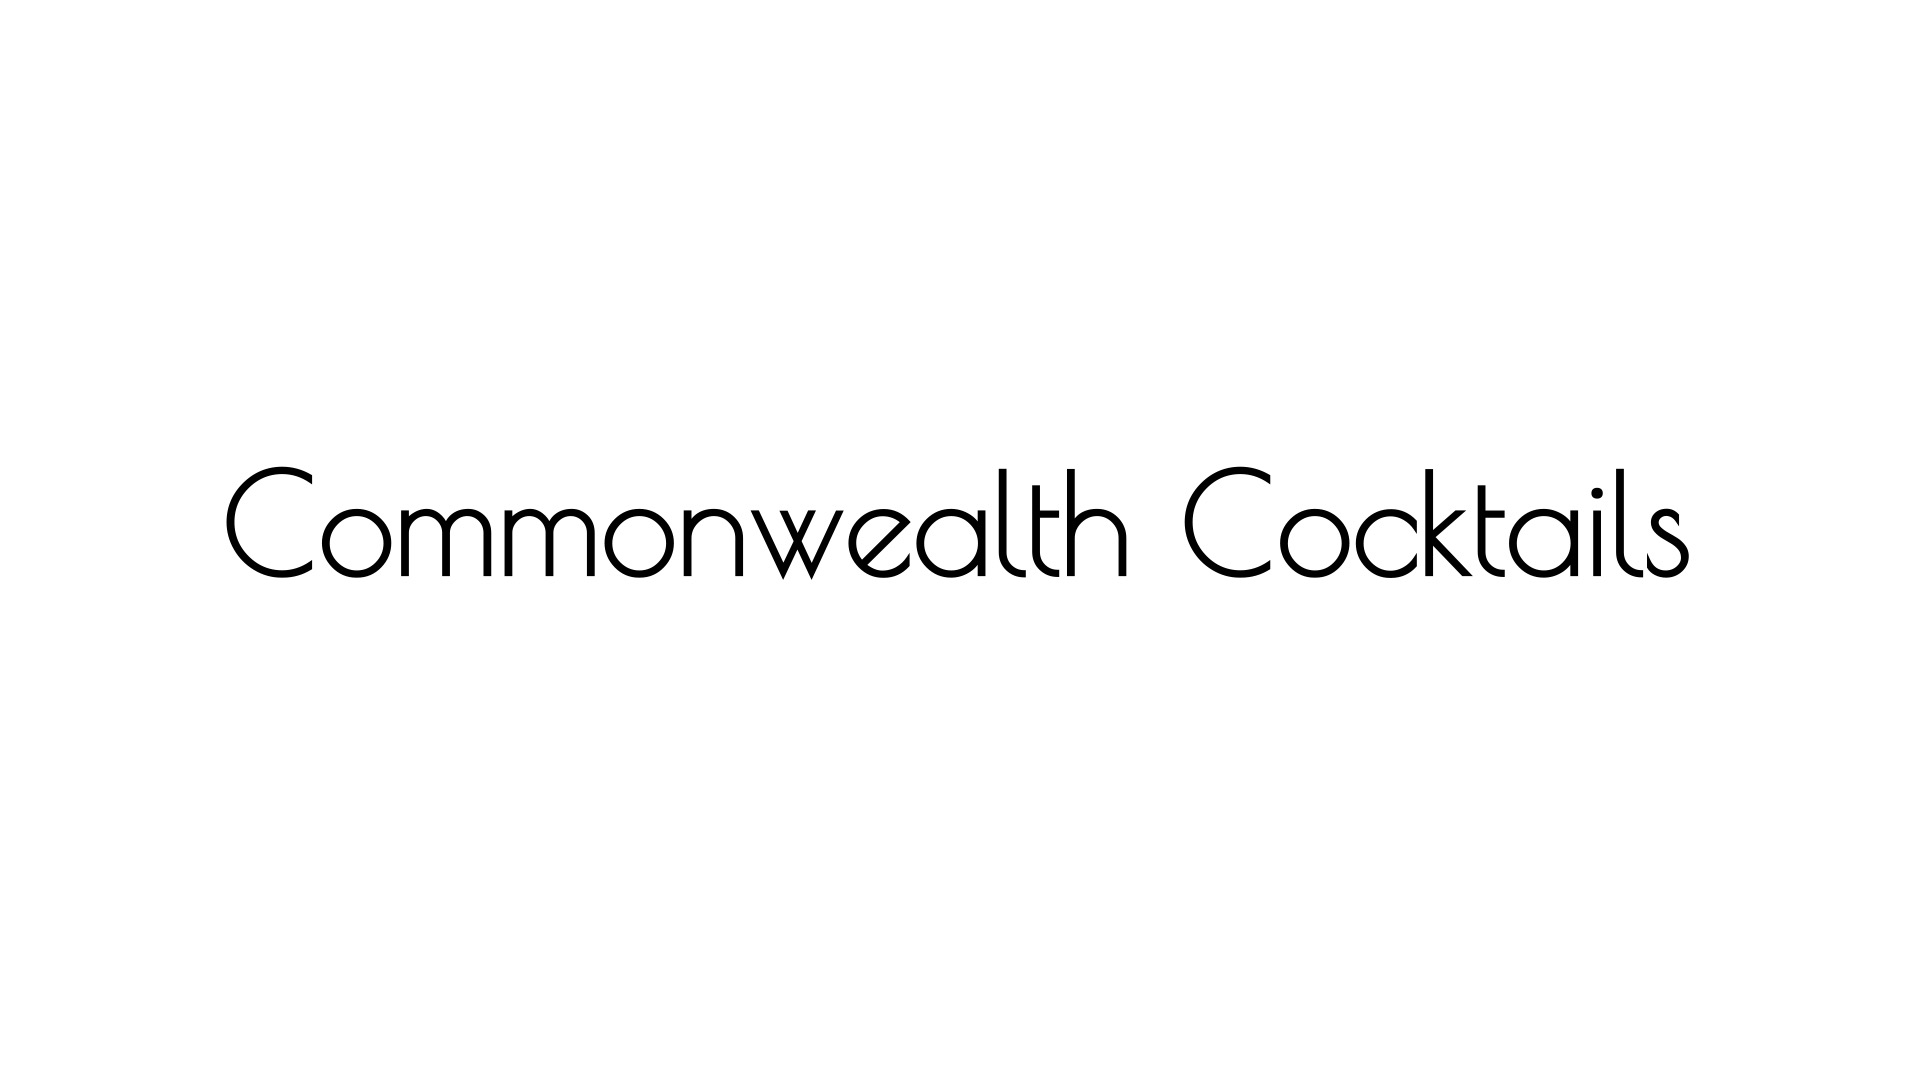 Video for Sazerac (IBA) from Commonwealth Cocktails